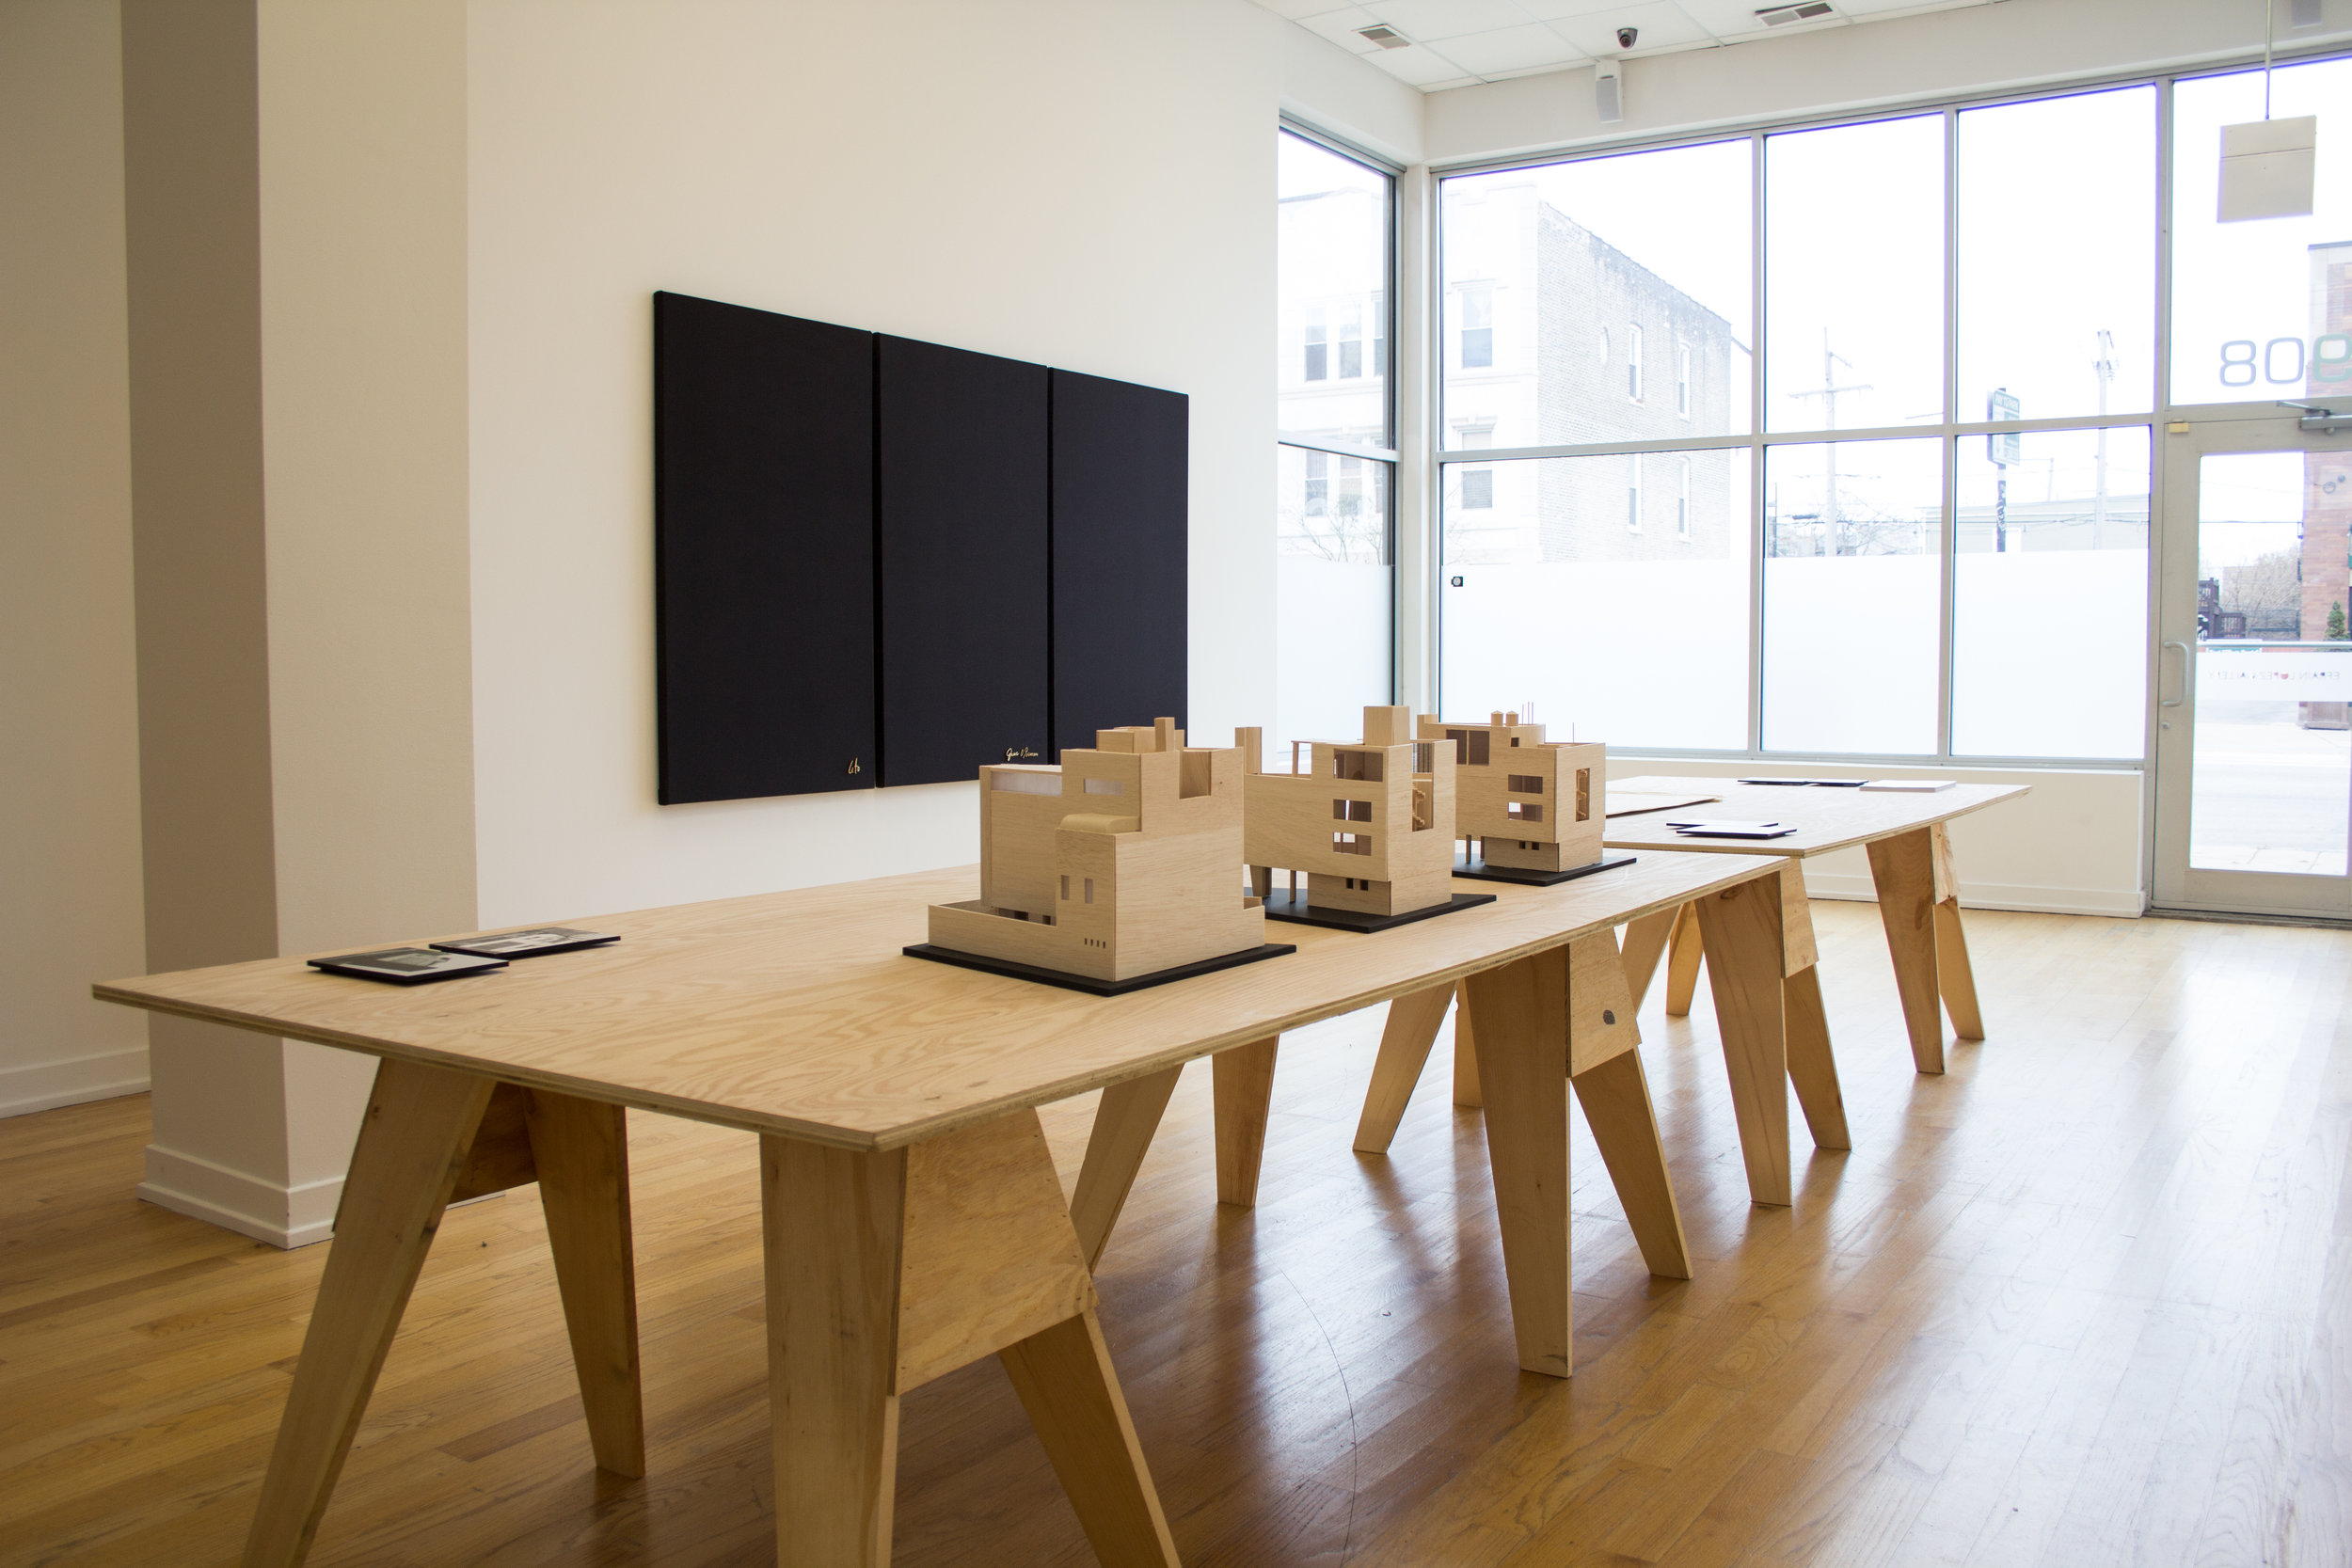 Exhibition view, This Modern House for Sale, 2017